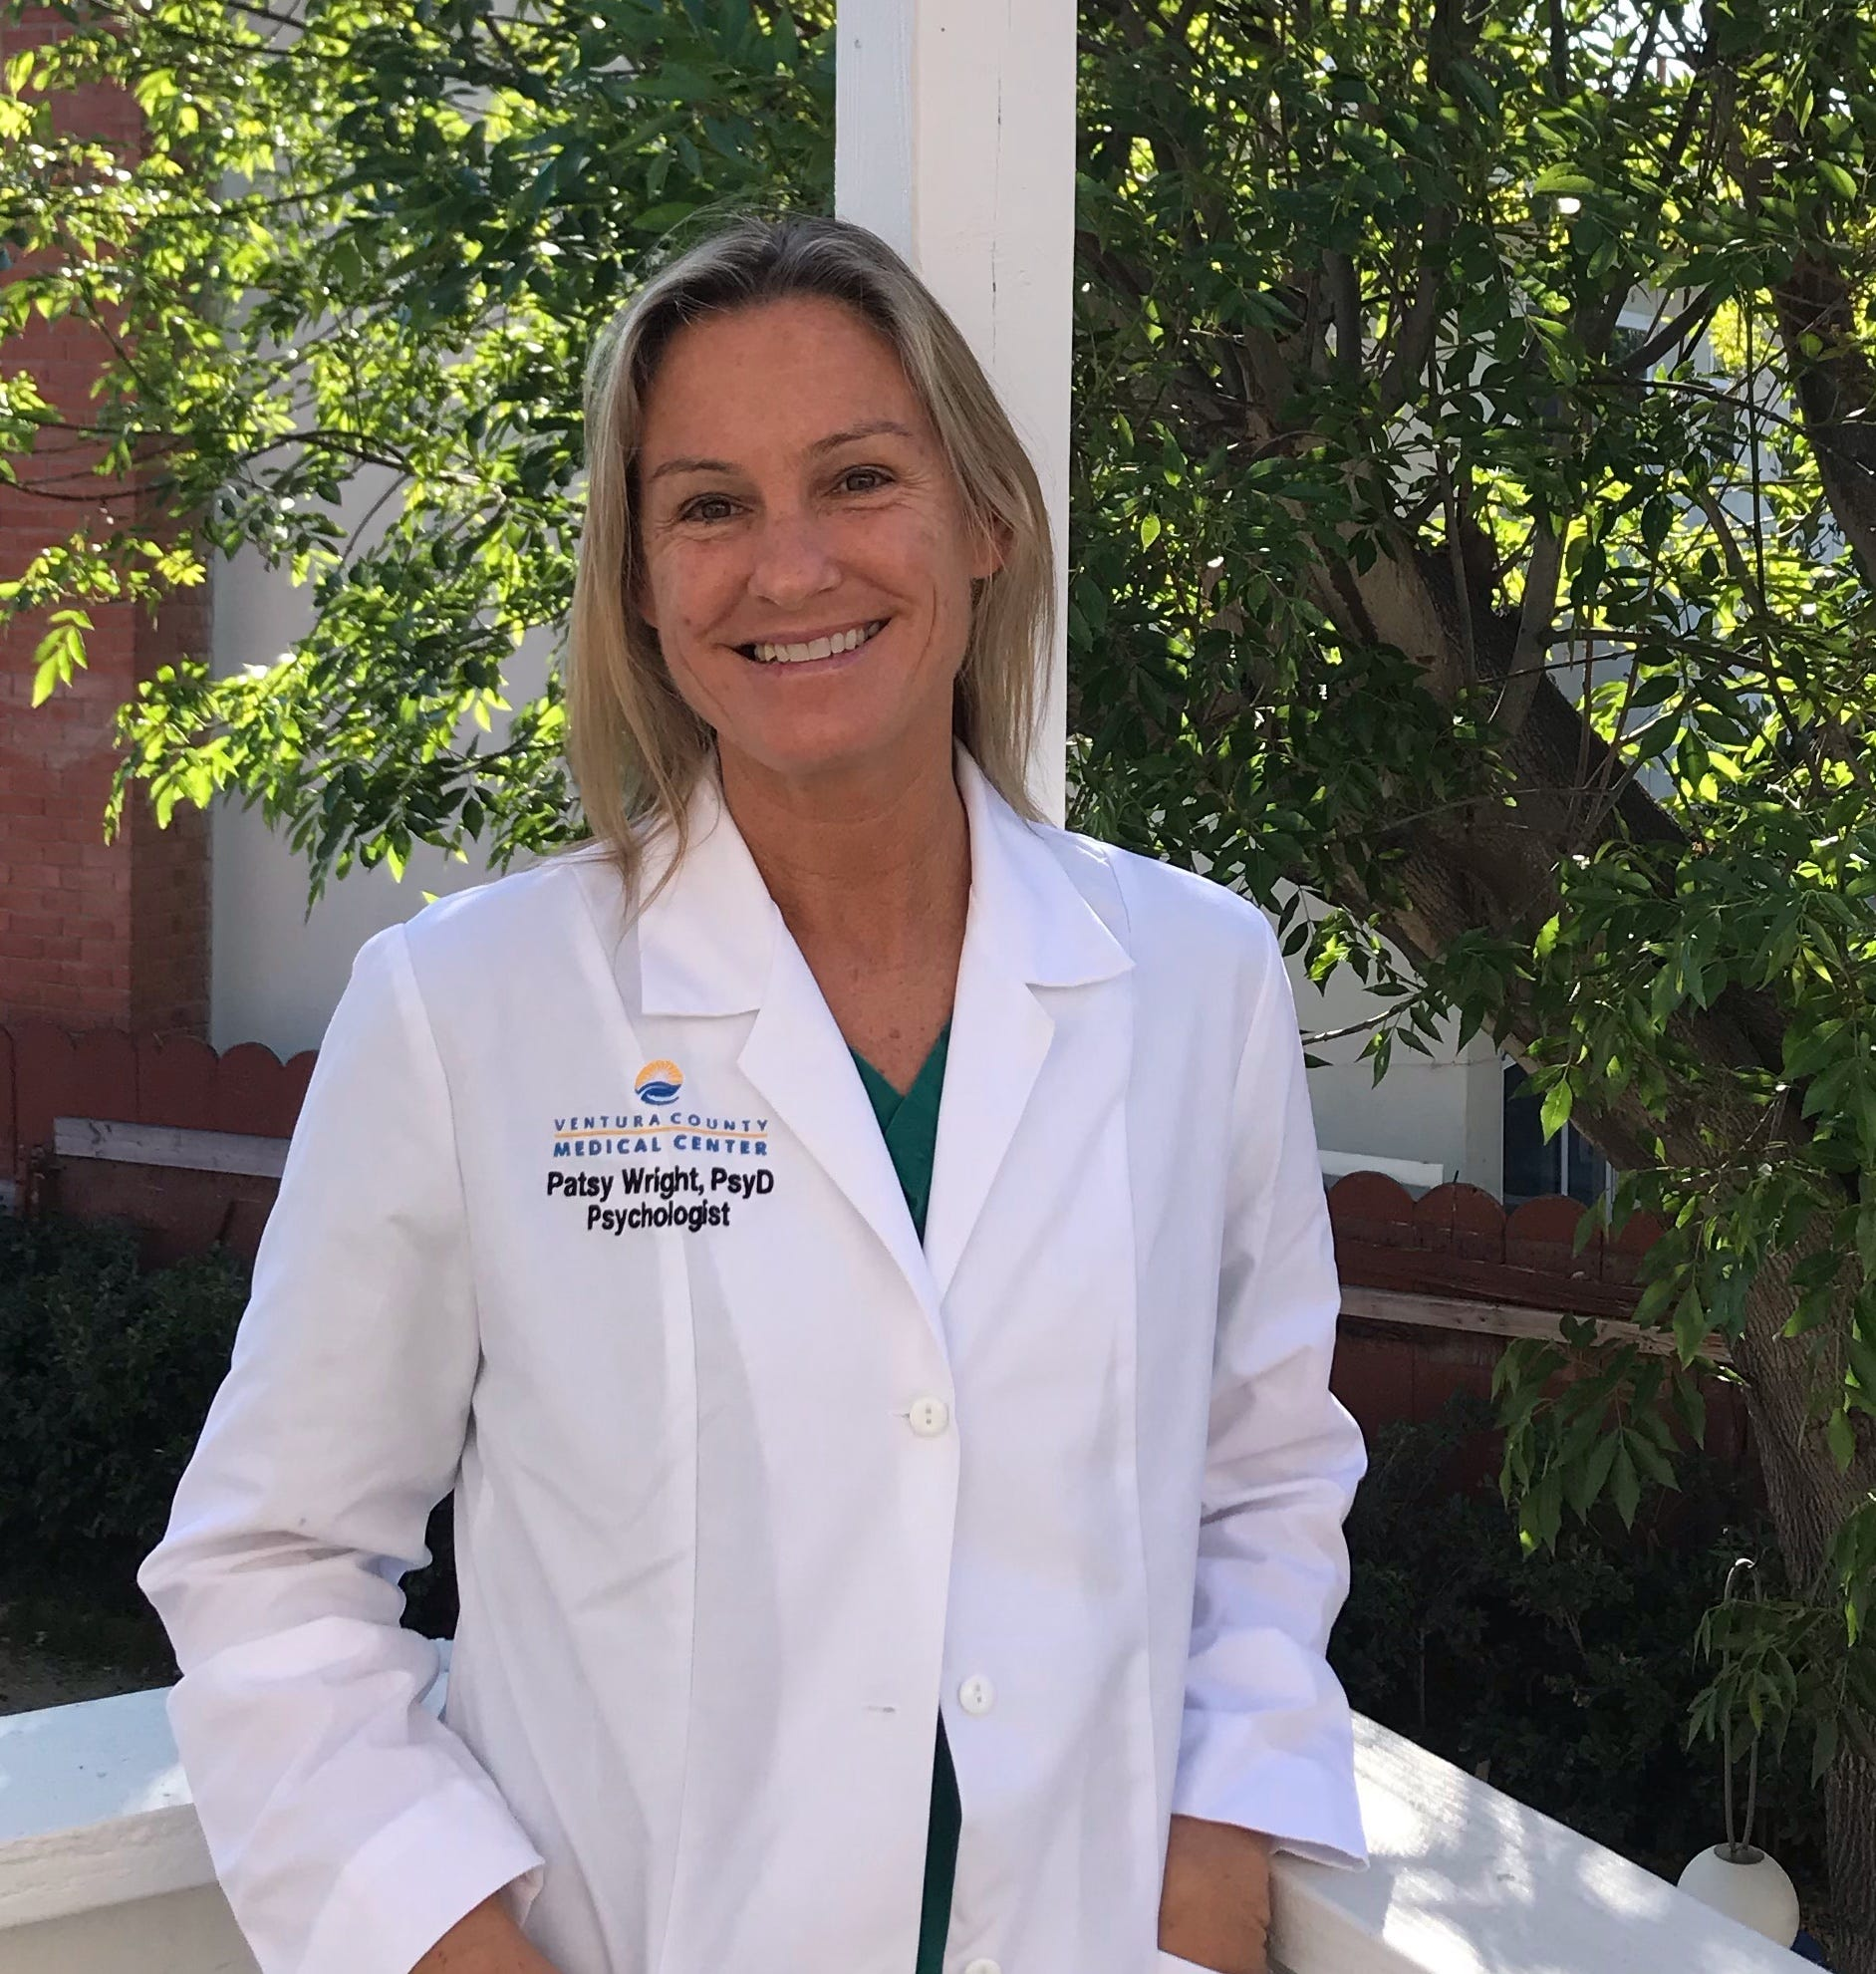 Patsy Wright, a clinical psychologist, started working on the palliative care team at Ventura County Medical Center in April 2020.